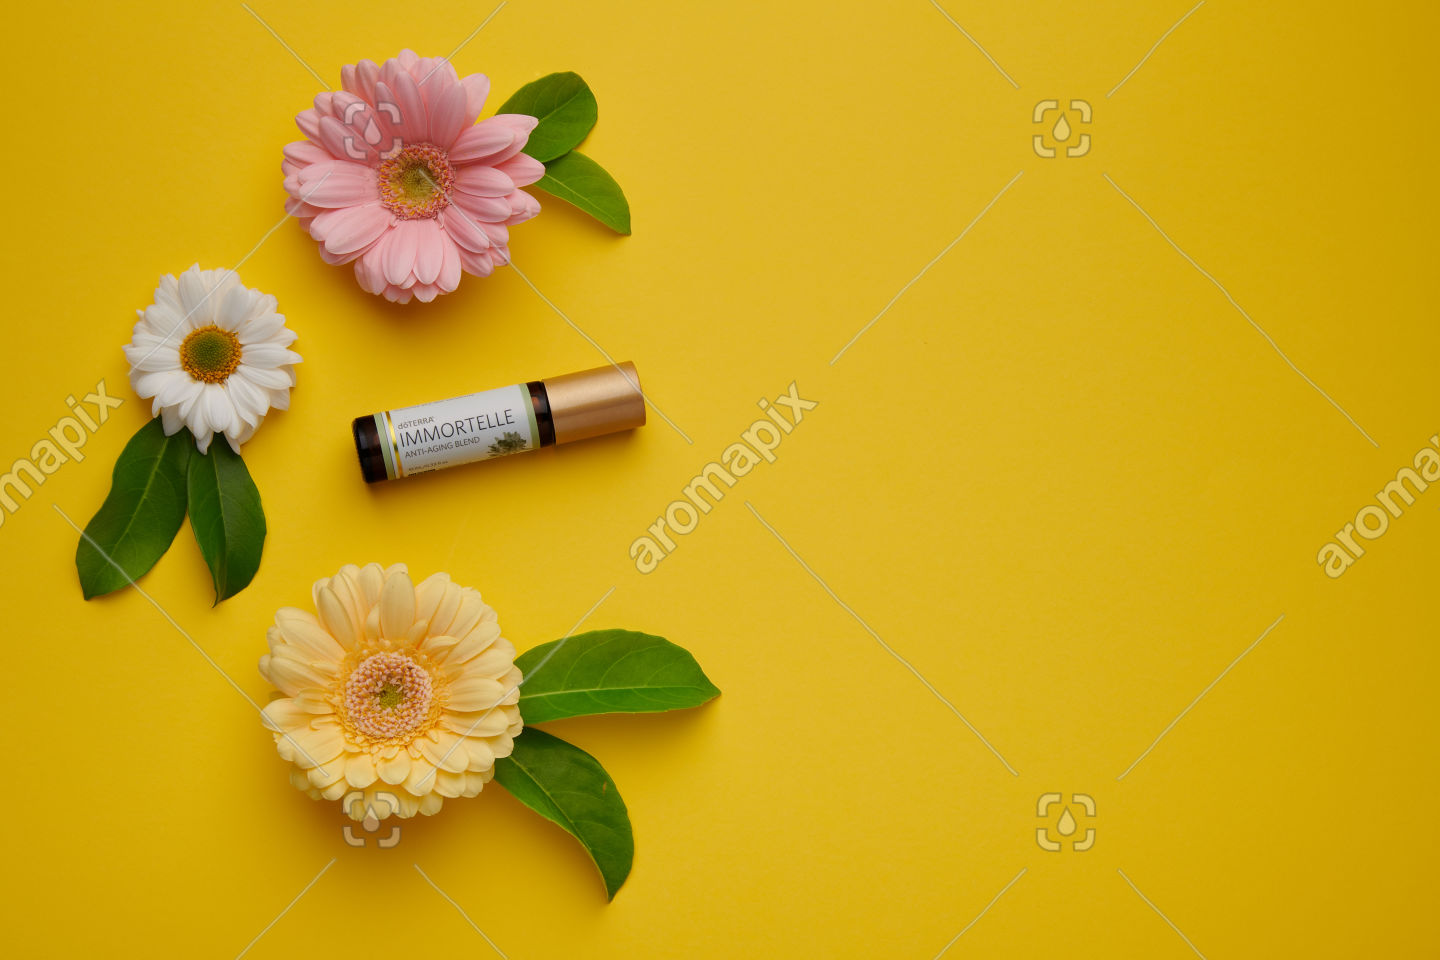 doTERRA Immortelle with flowers and leaves on yellow